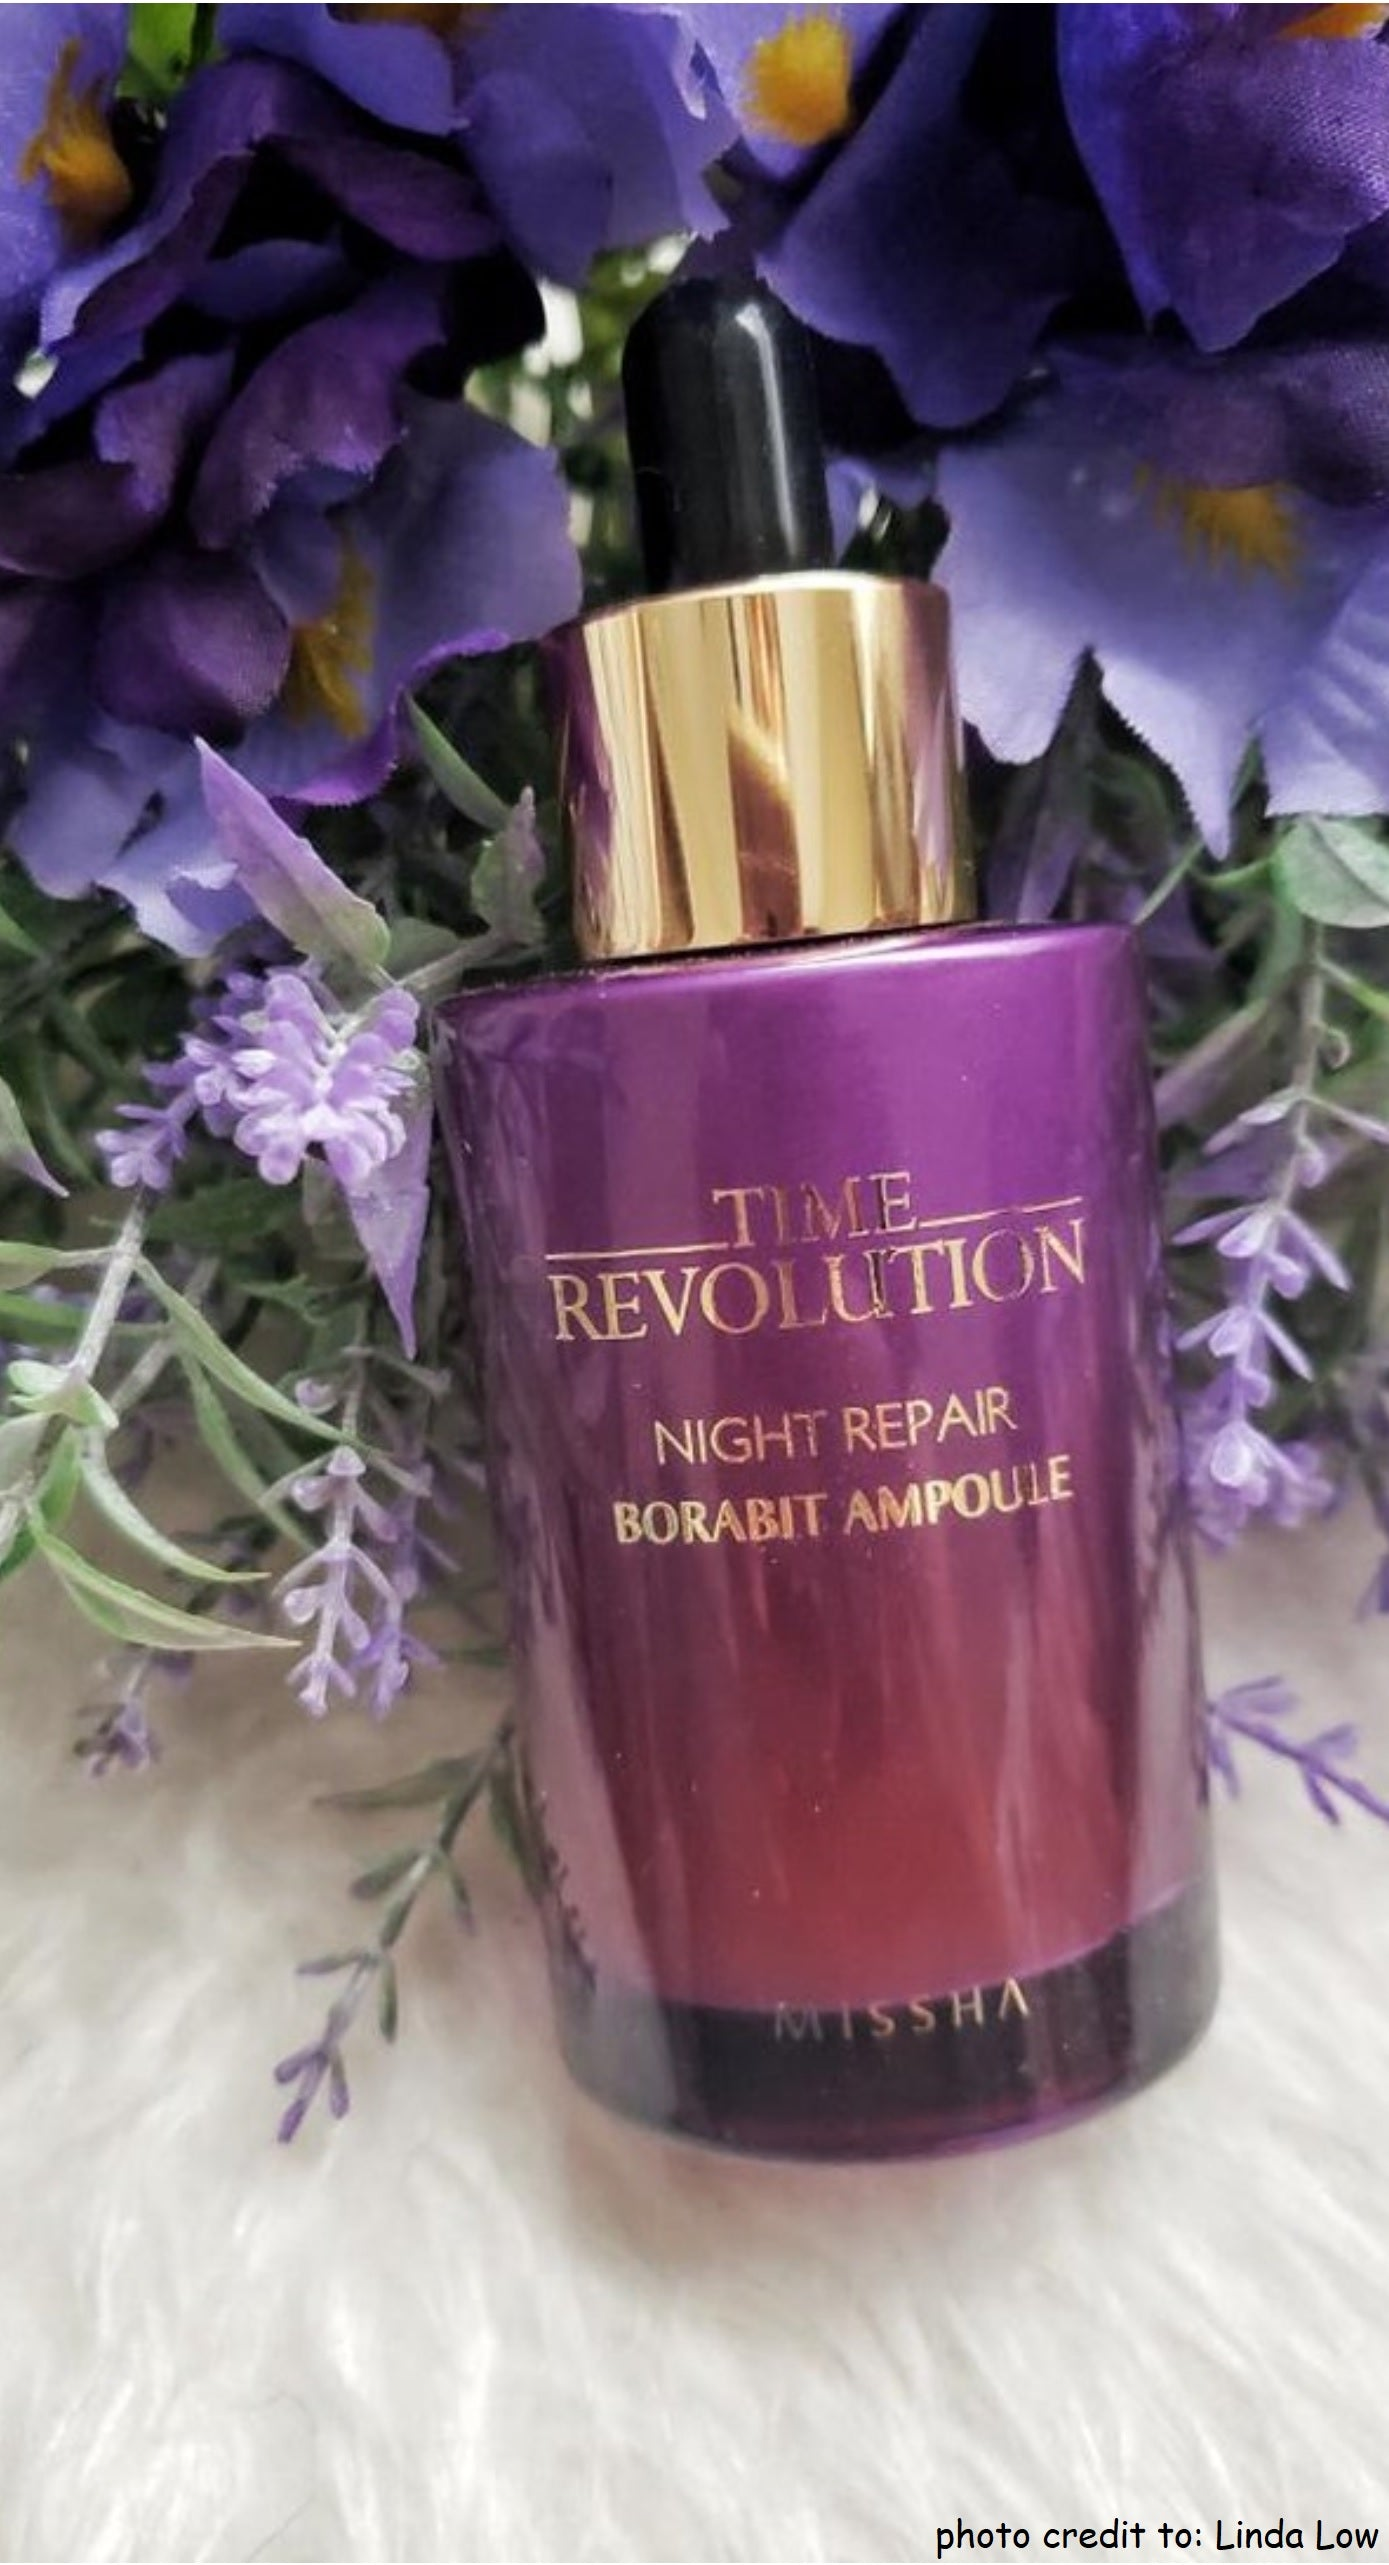 Missha Time Revolution Night Repair Borabit Ampoule 50 ml